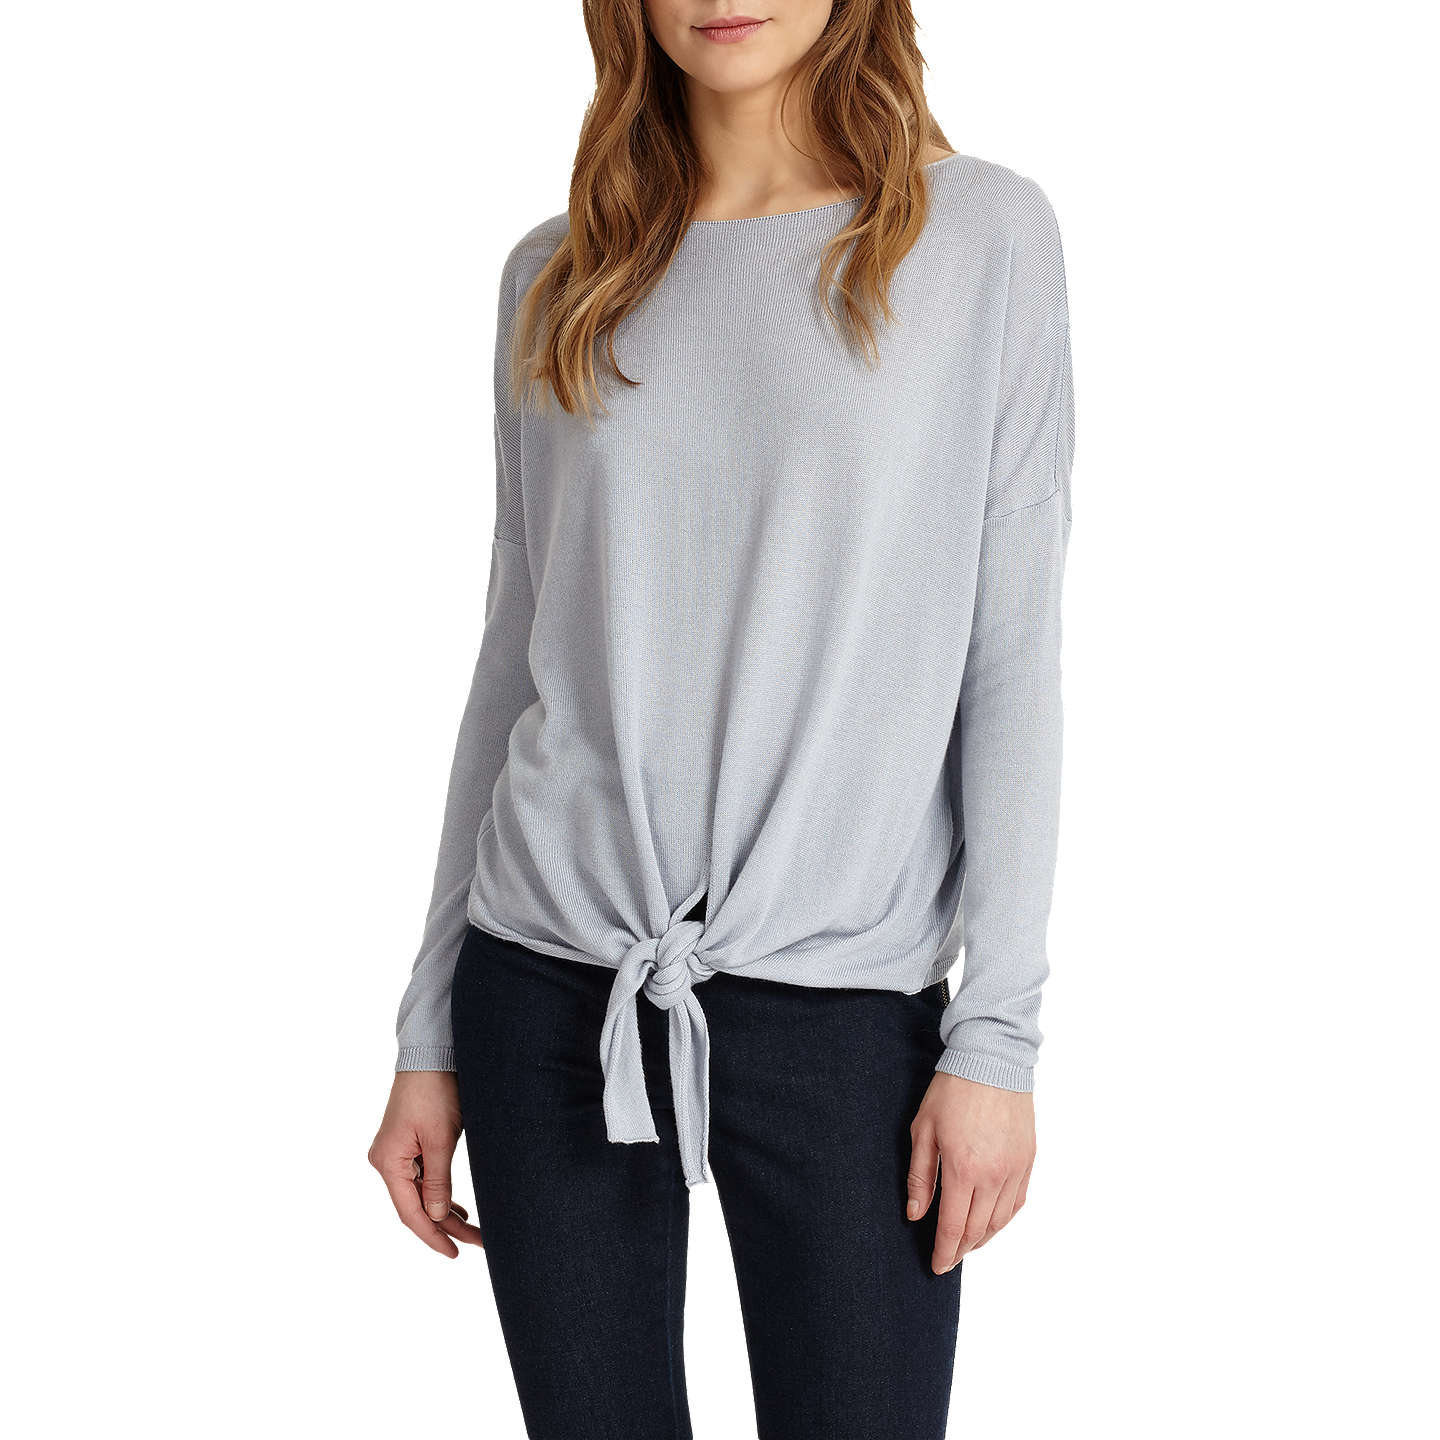 BuyPhase Eight Jolanda Tie Front Jumper, Soft Blue, XS Online at johnlewis.com